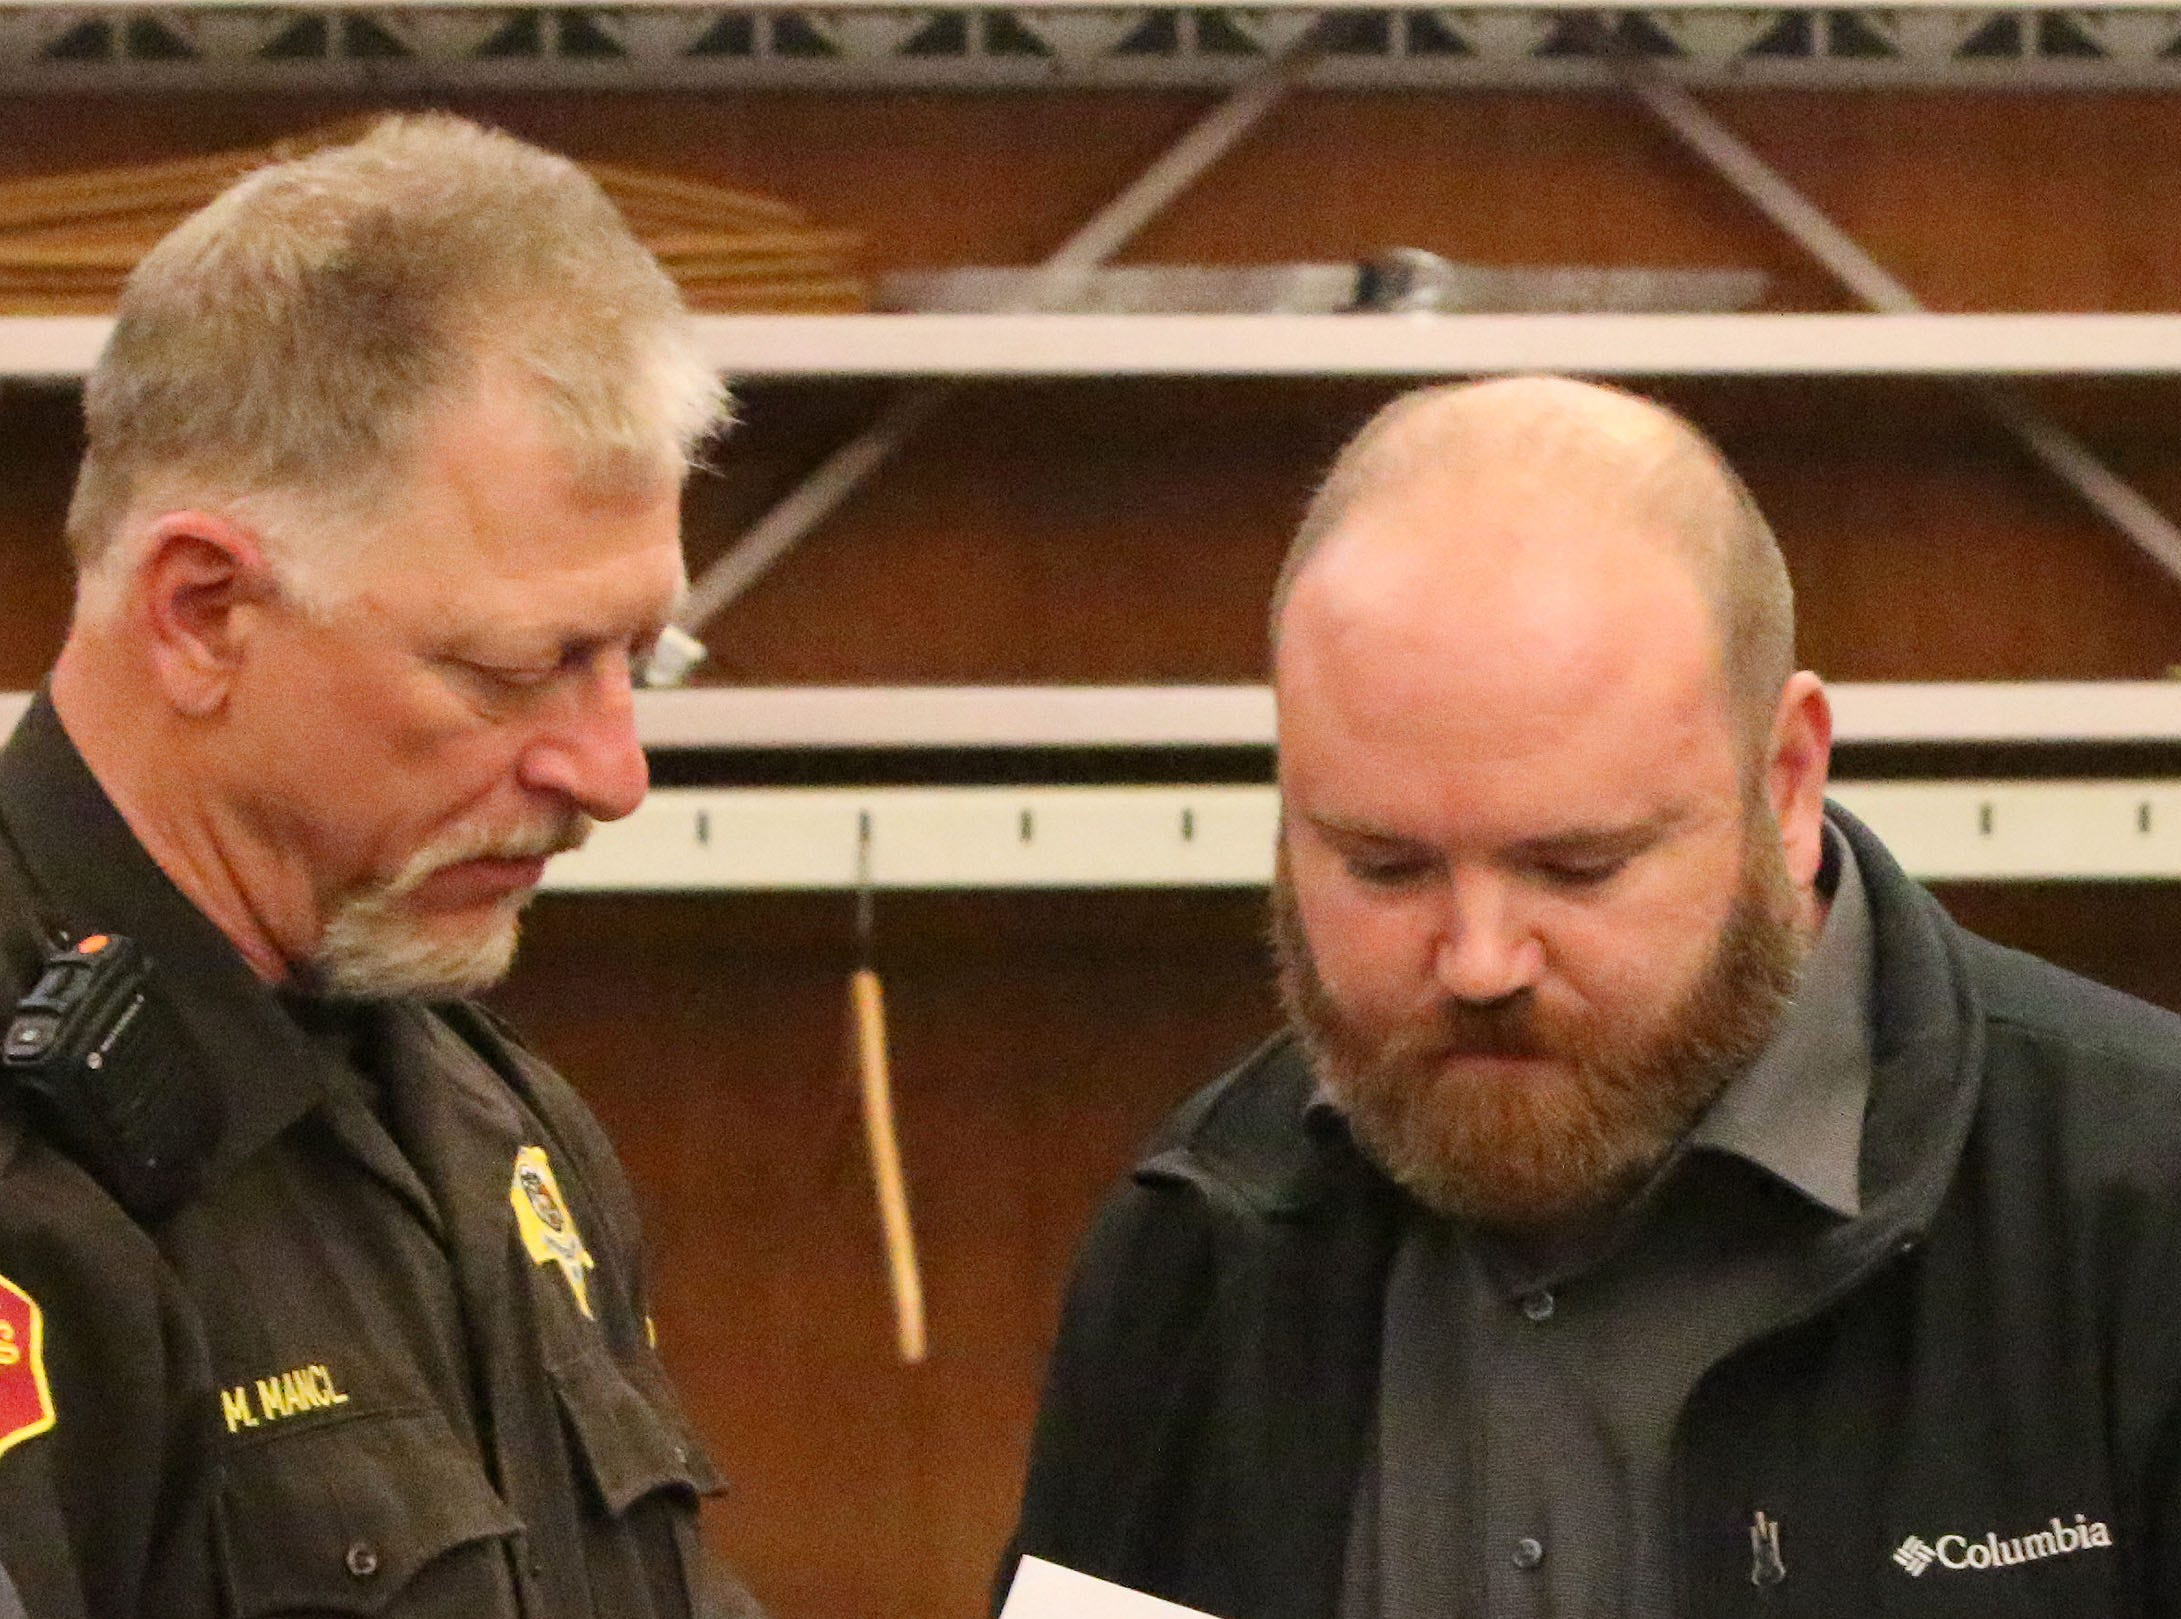 Sheboygan County Circuit Court Branch 1 bailiff Mark Mancl, left, explains instructions to Anthony James Keyport following his sentencing hearing, Friday, October 12, 2018, in Sheboygan, Wis. Keyport was given jail and probation.